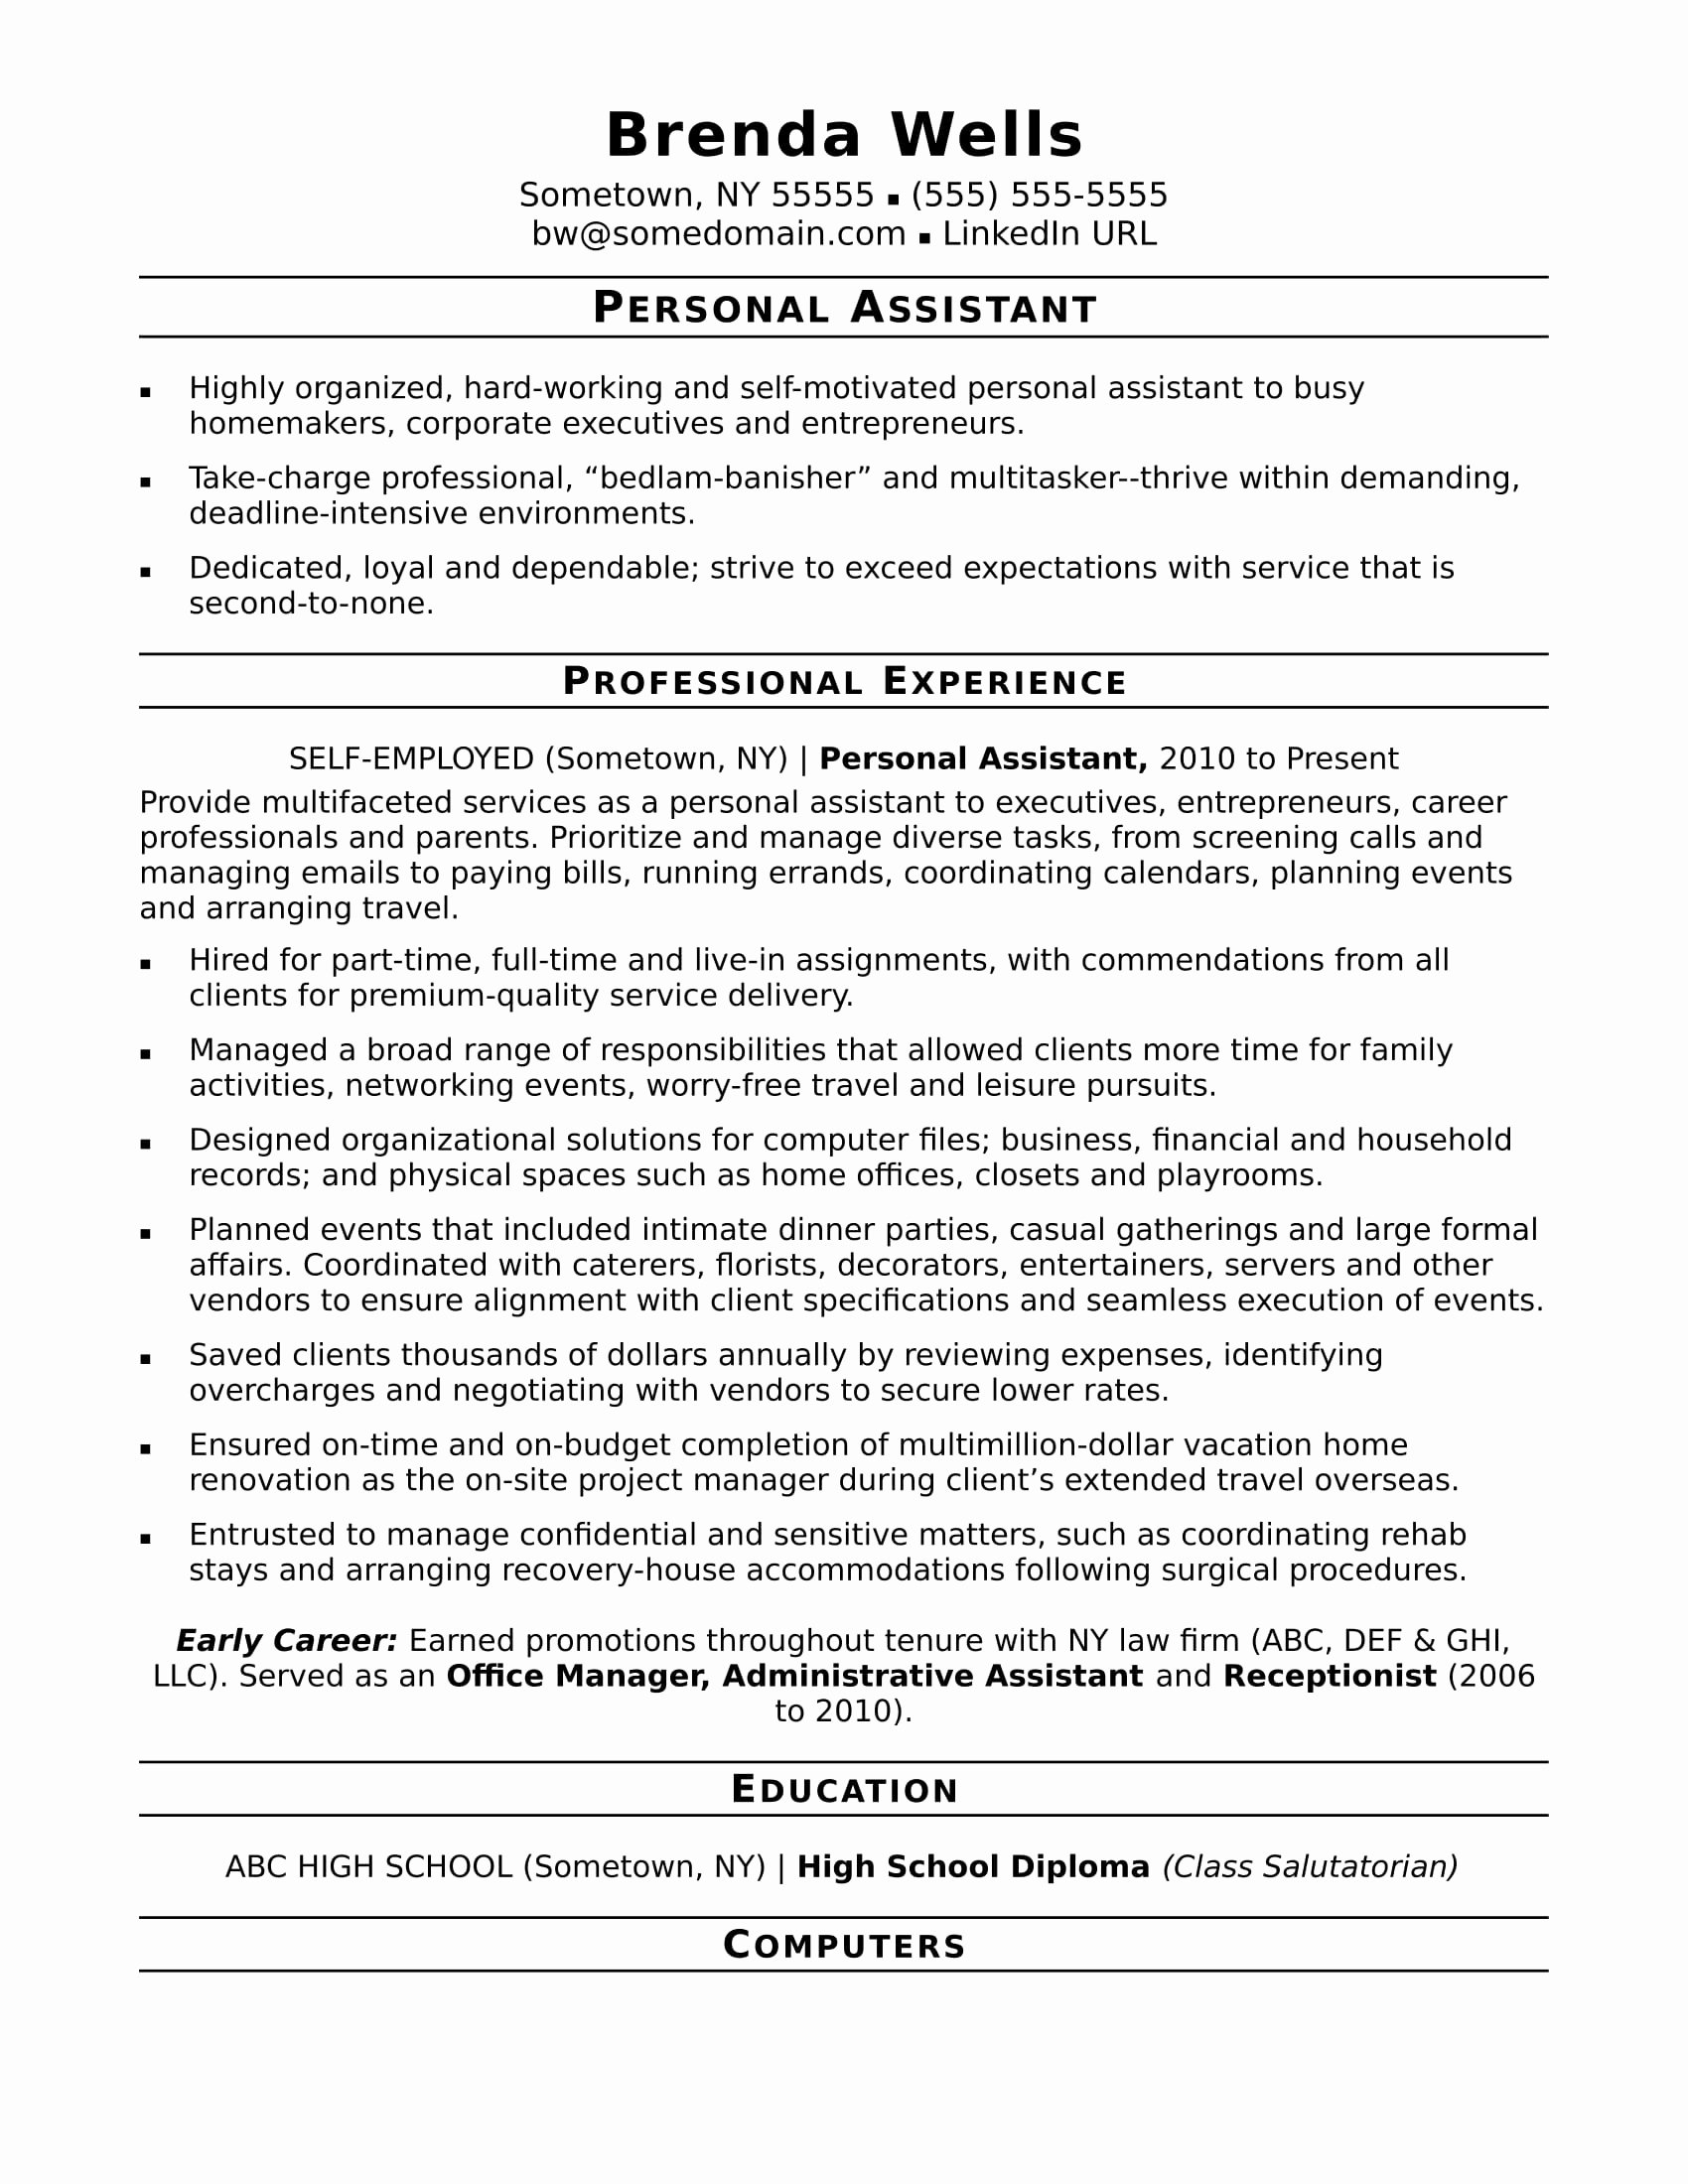 Office assistant Resume Template Fresh Personal assistant Resume Sample